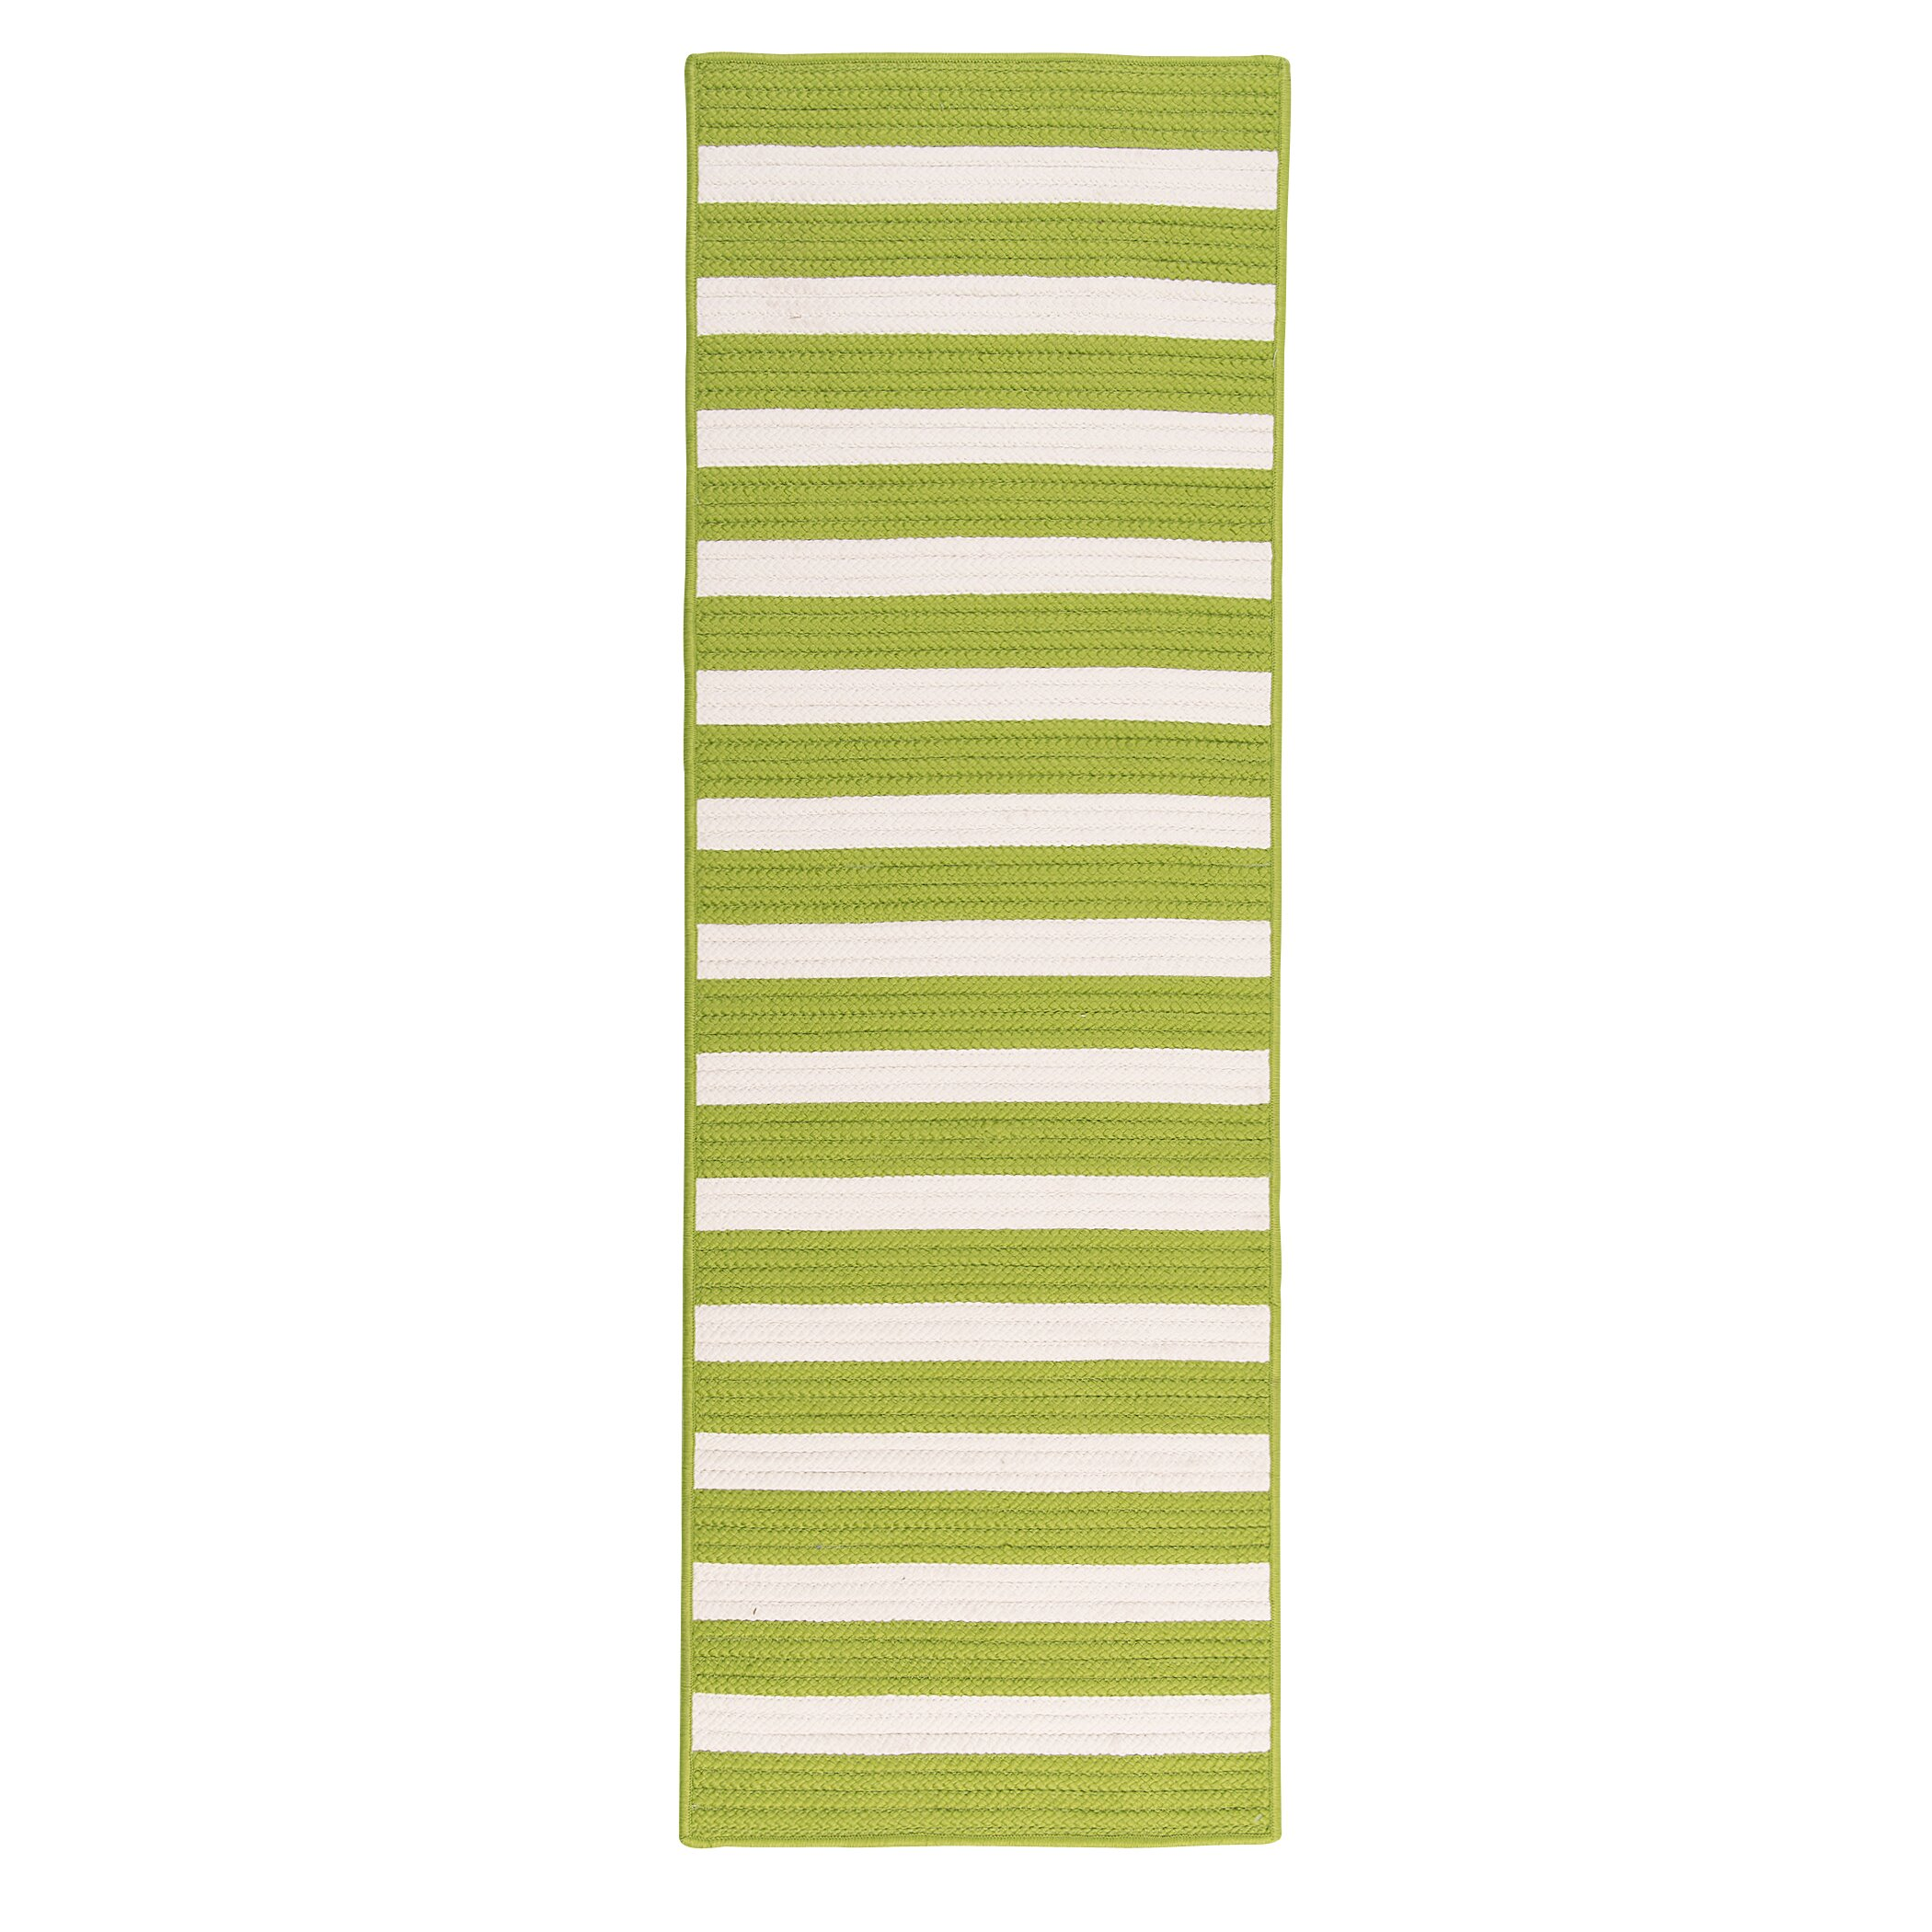 Colonial Mills Stripe It Bright Lime Indoor Outdoor Area